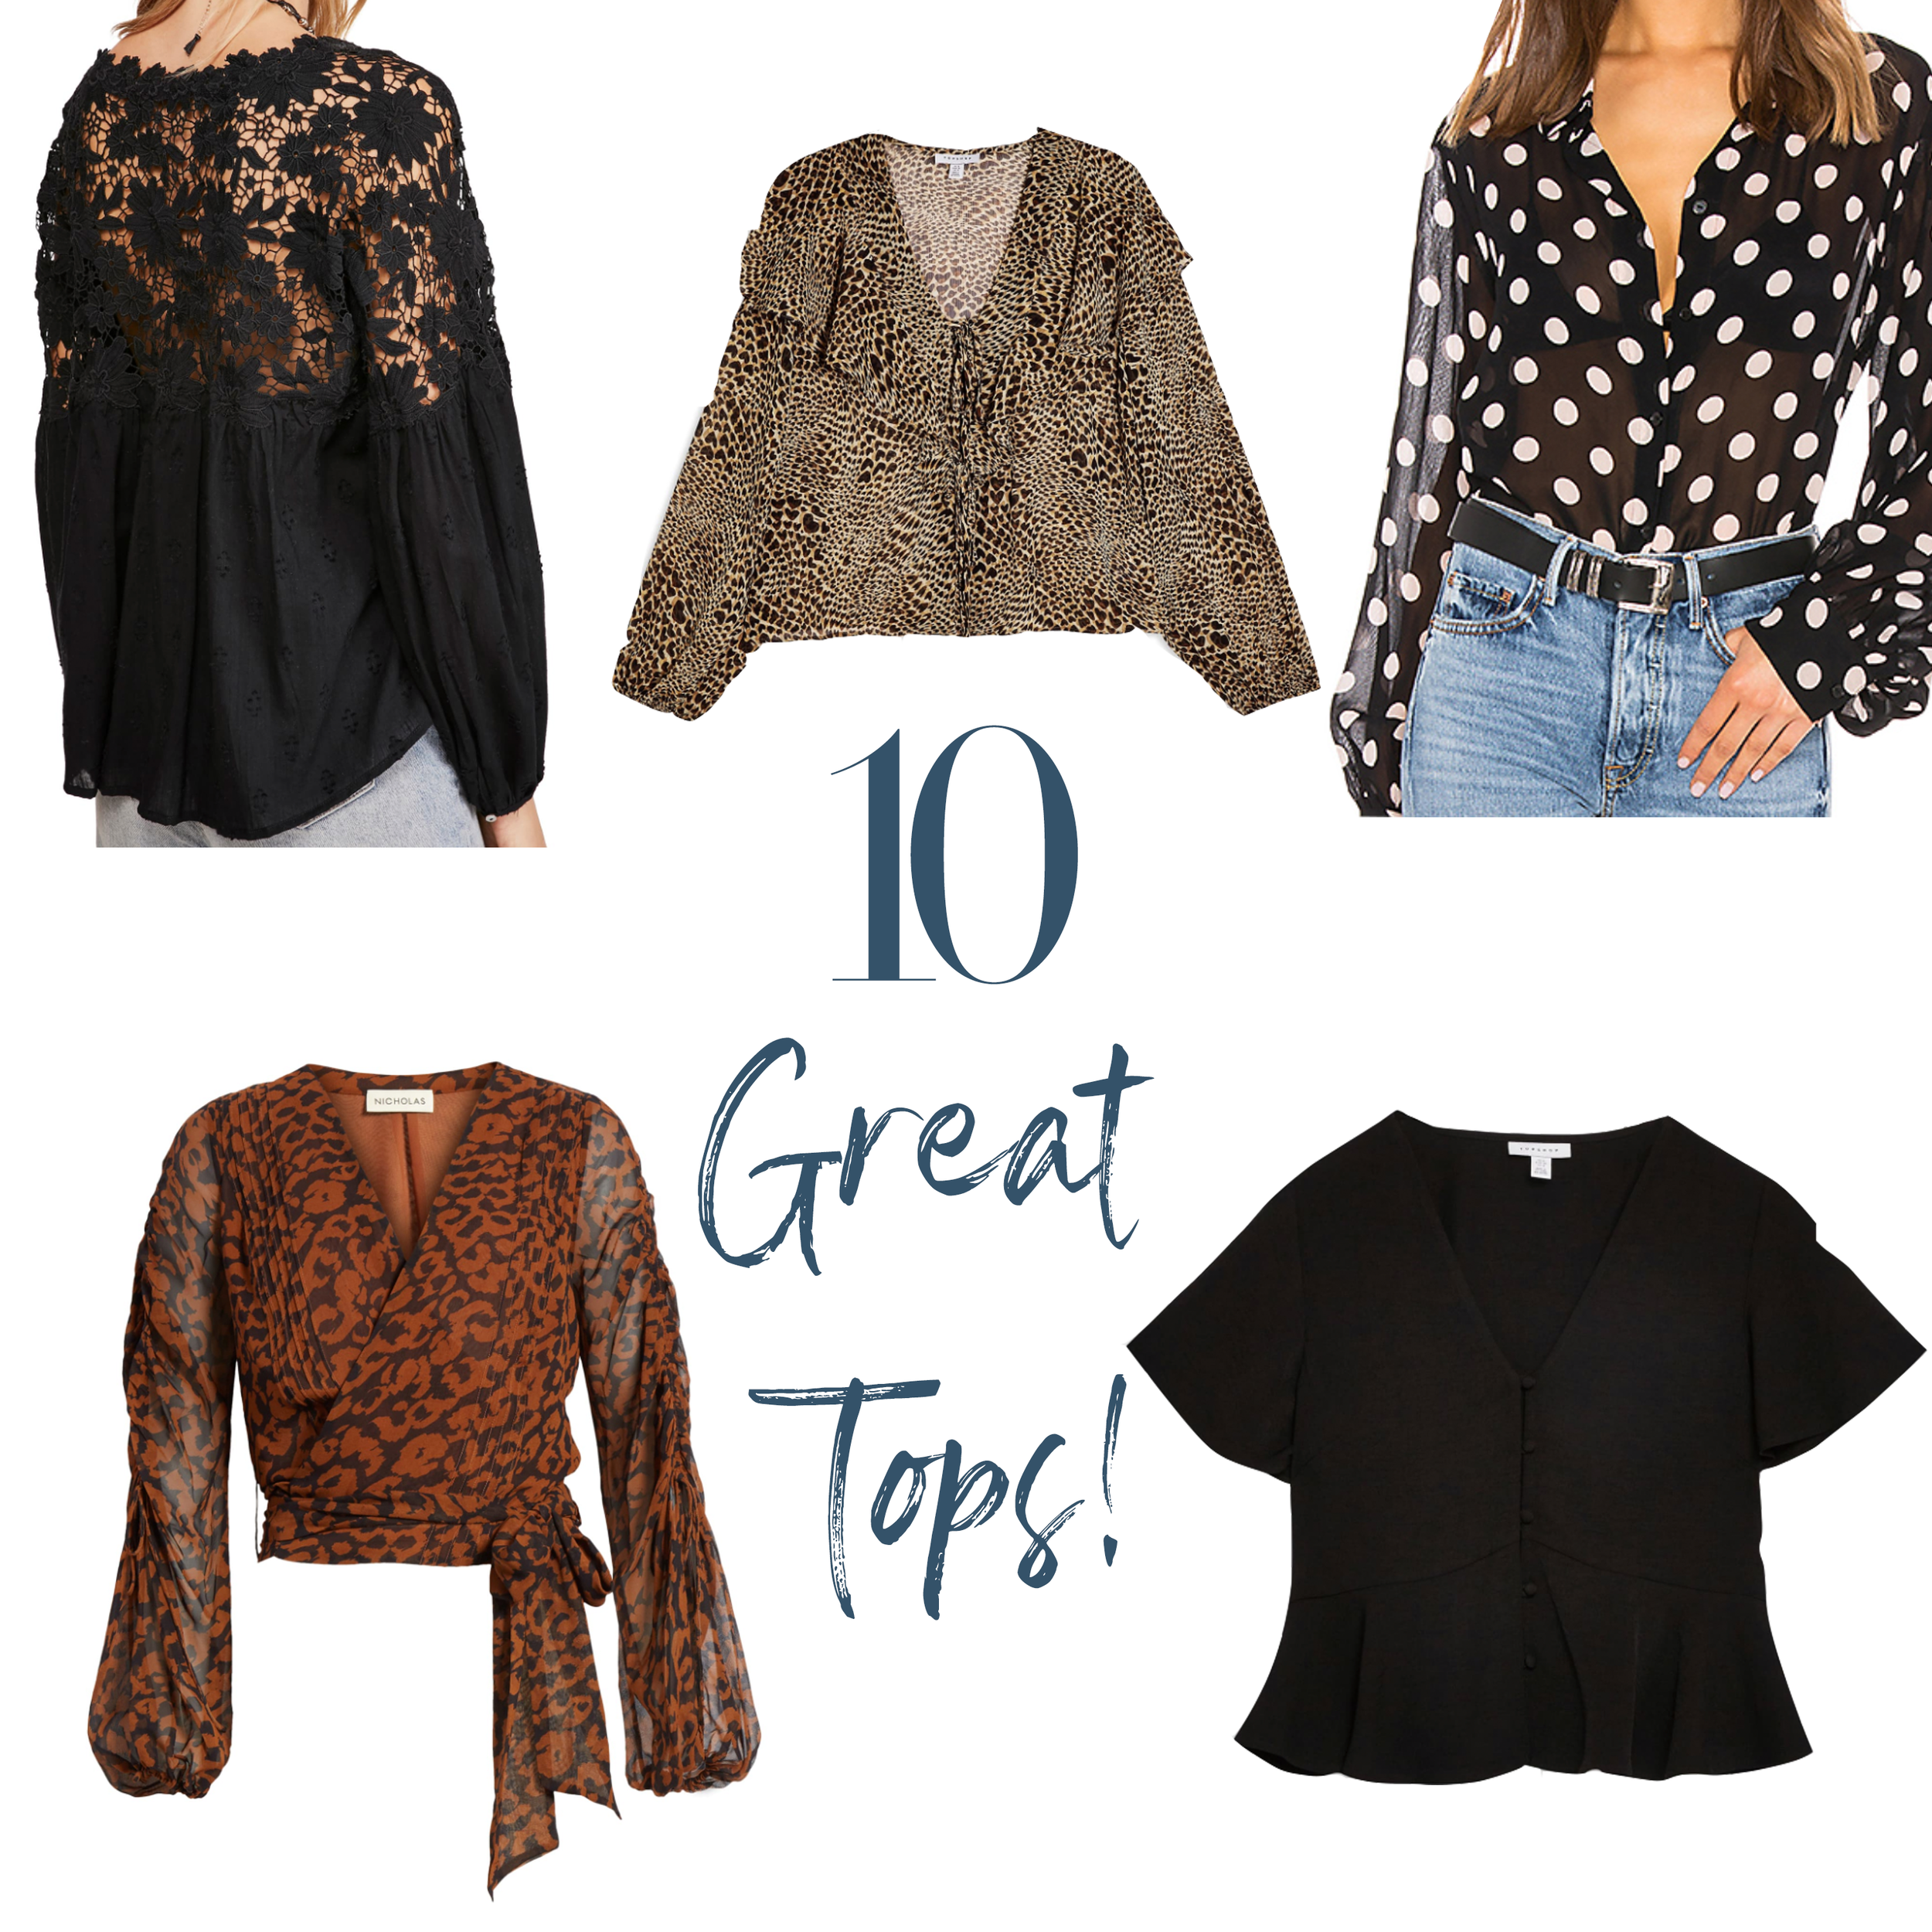 10greattops.png